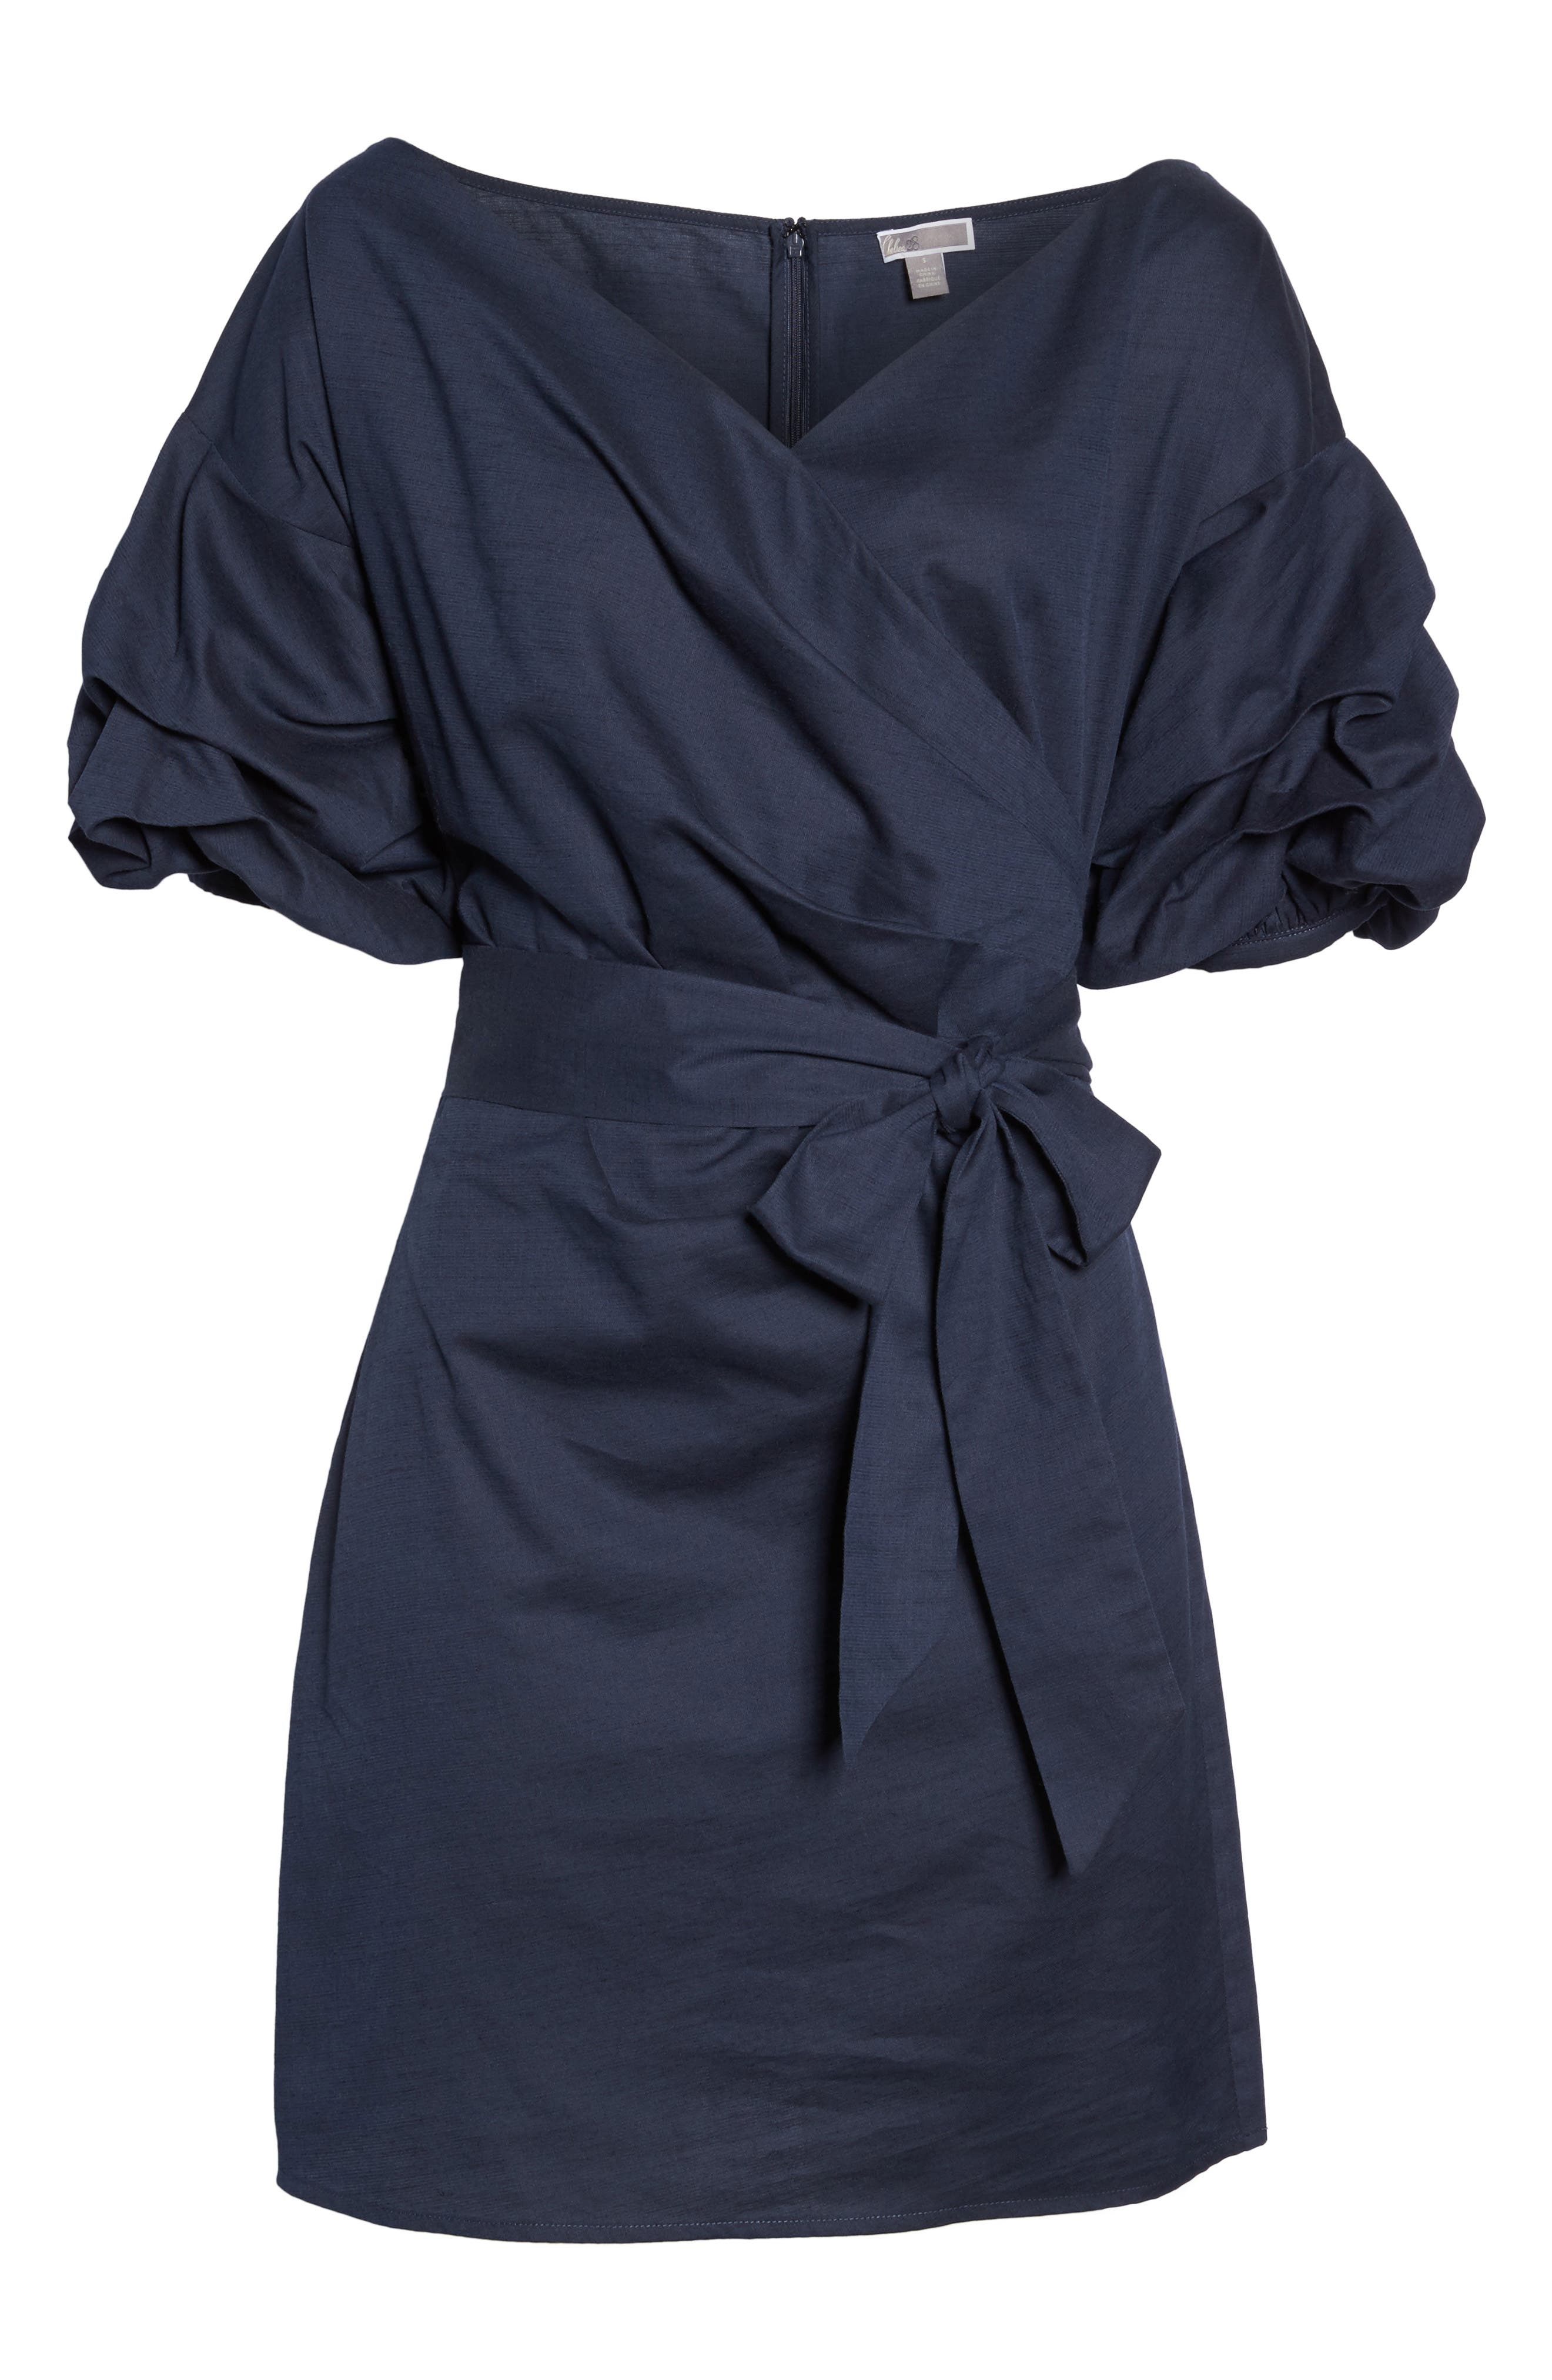 Billow Sleeve Dress,                             Alternate thumbnail 8, color,                             Navy Sapphire